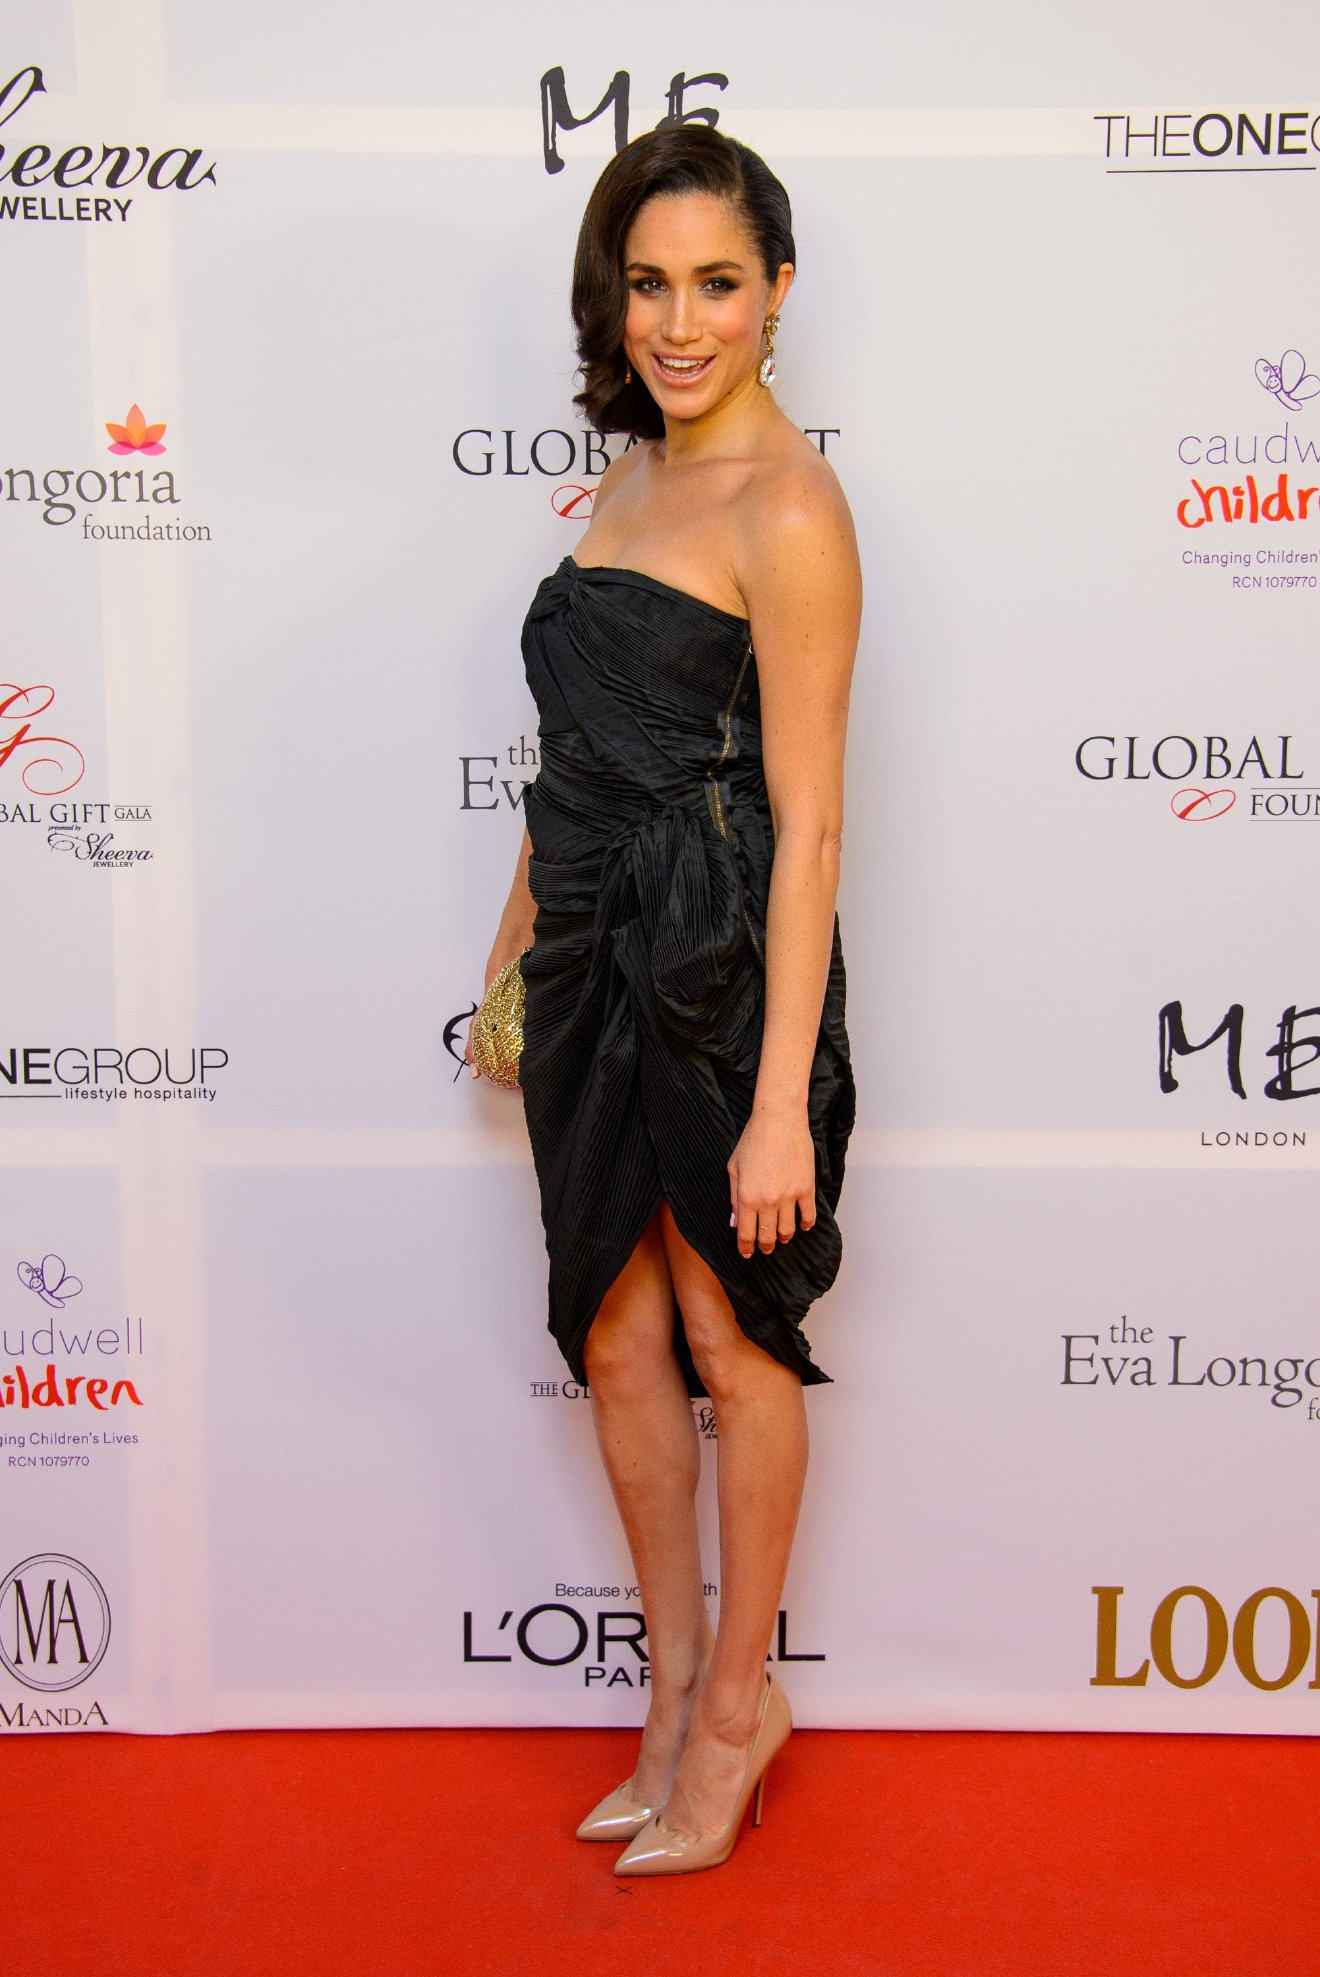 The 4th Annual Global Gift Gala held at ME hotel - Arrivals  Featuring: Meghan Markle Where: London, United Kingdom When: 19 Nov 2013 Credit: WENN.com